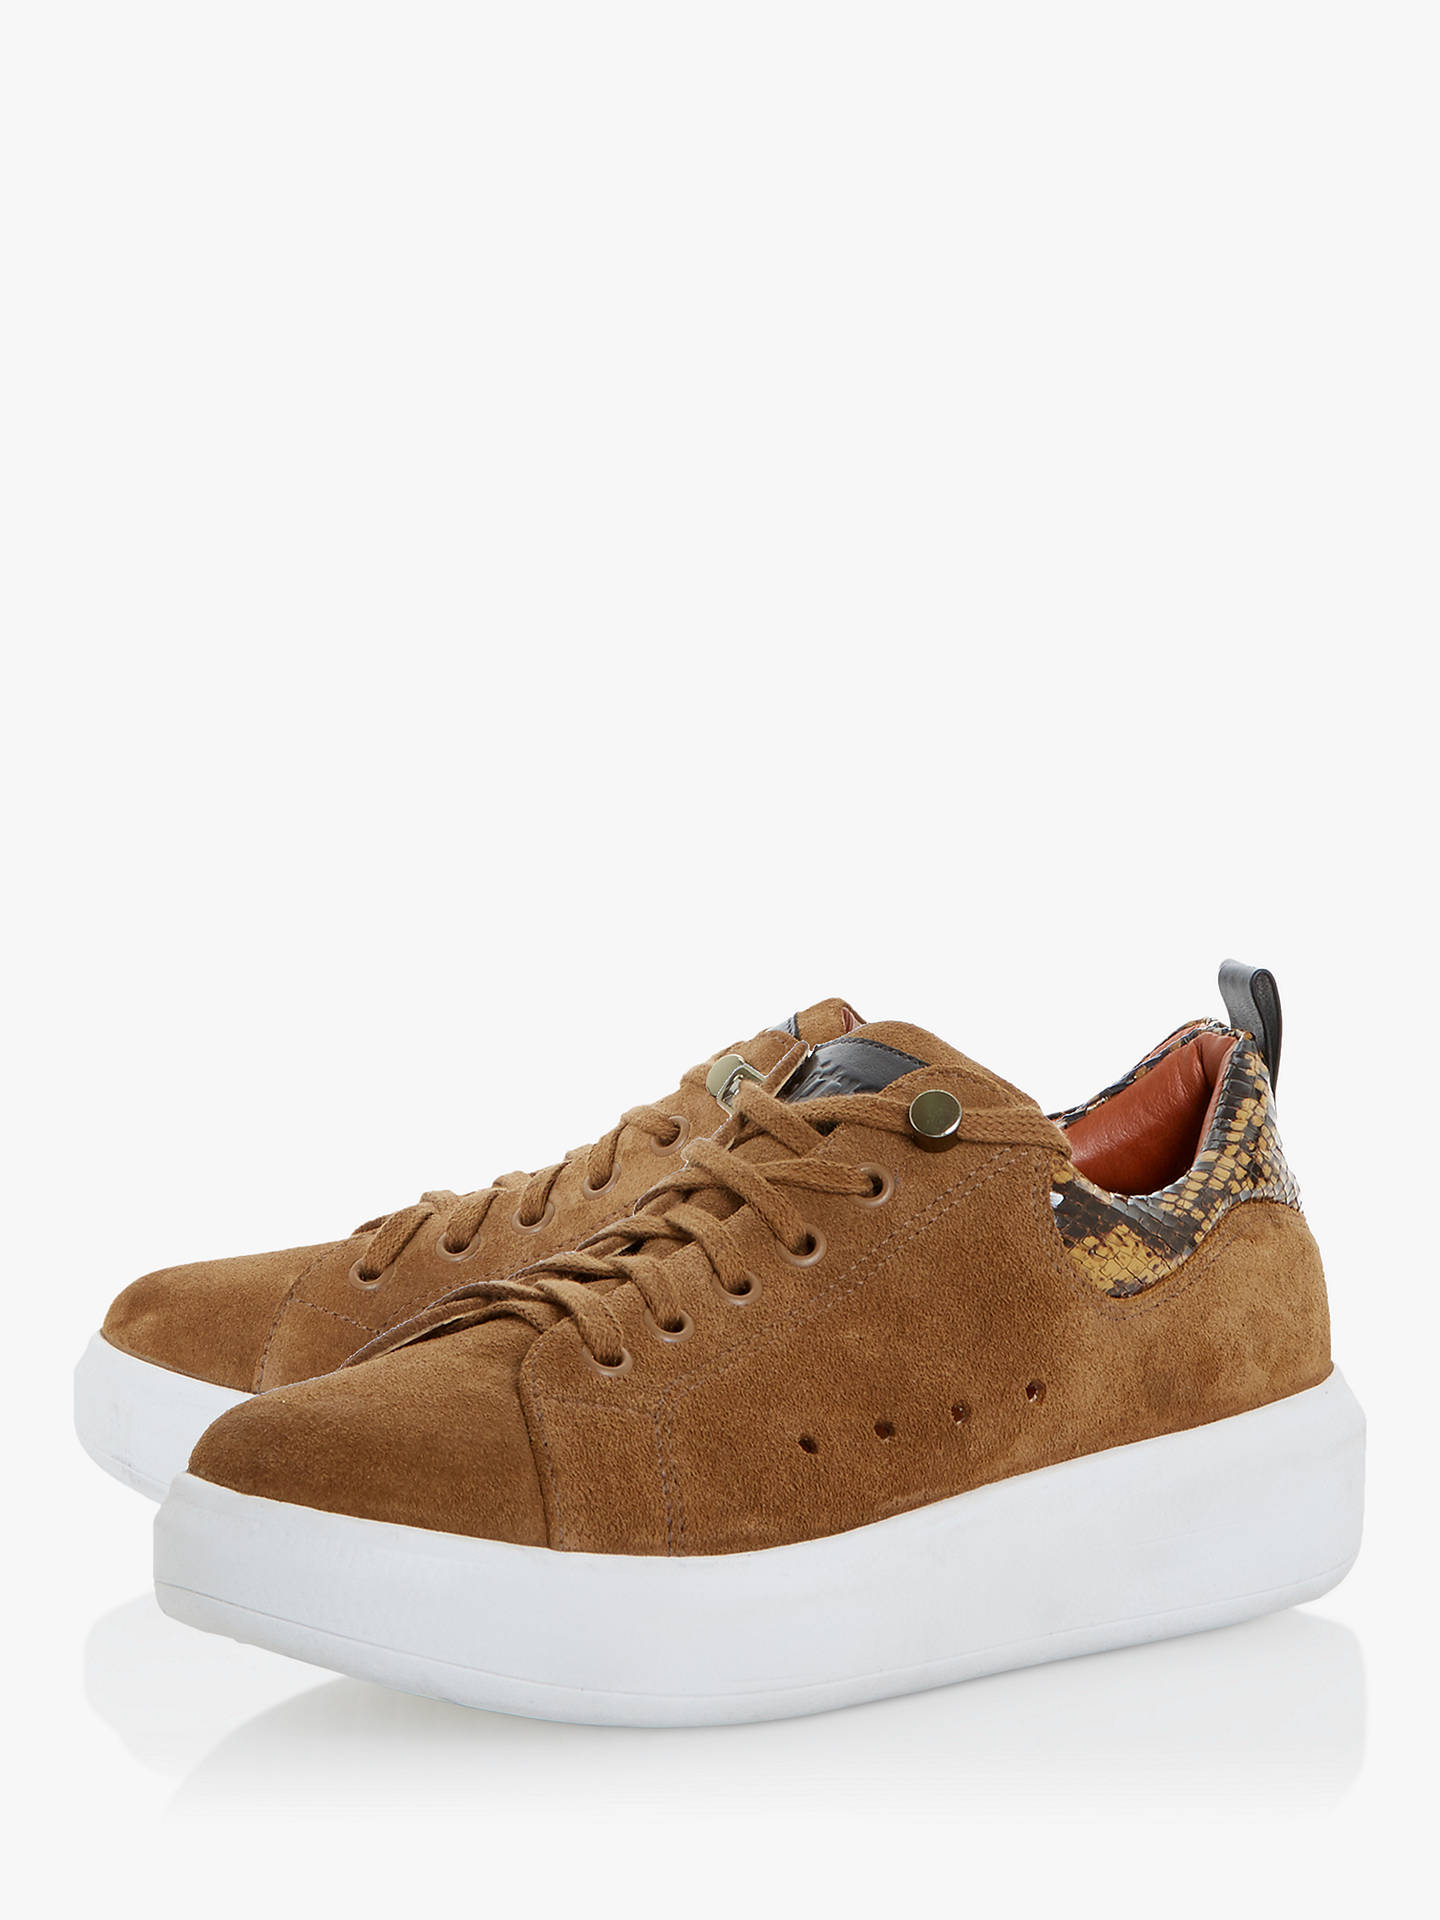 Buy Bertie Endure Suede Reptile Print Trainers, Tan, 3 Online at johnlewis.com